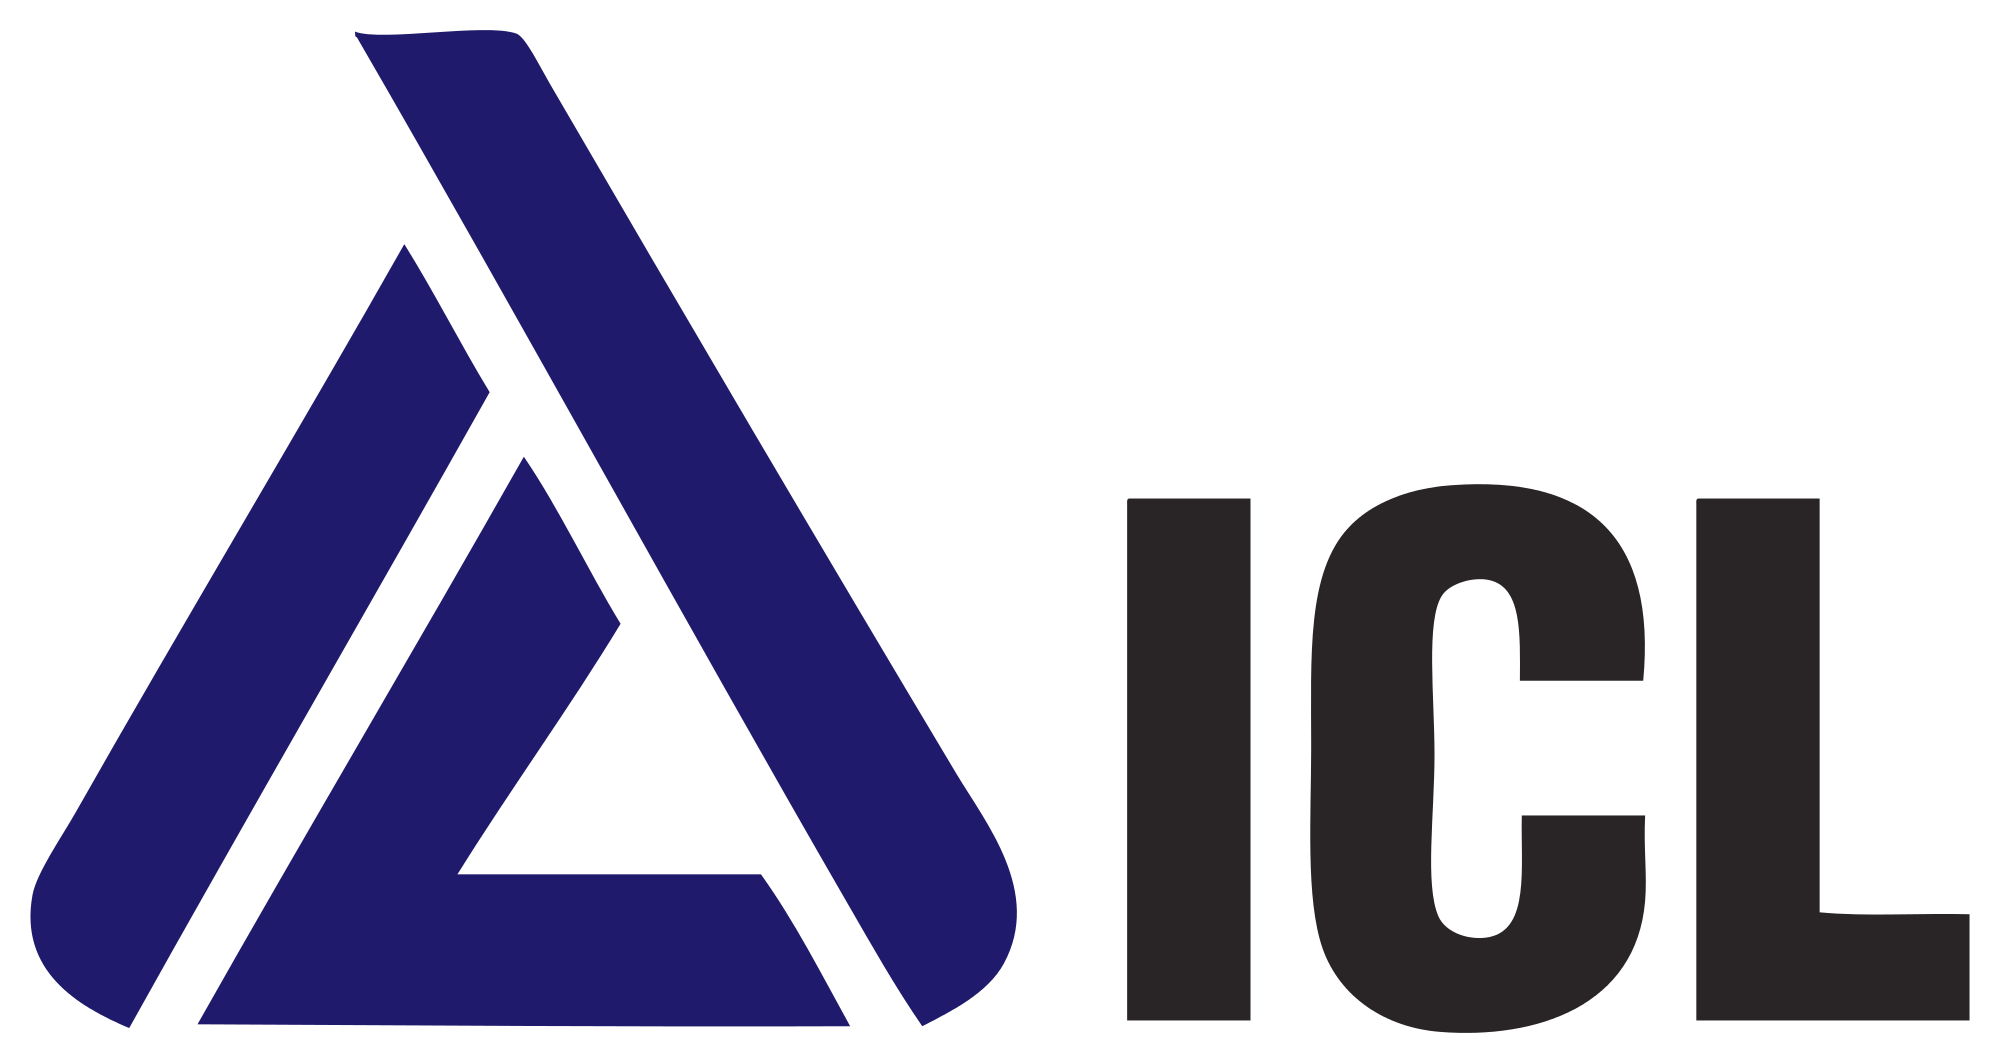 Israel Chemicals Ltd. (NYSE:ICL) Expected to Issue Dividend, After Reporting EPS Growth in FY2015